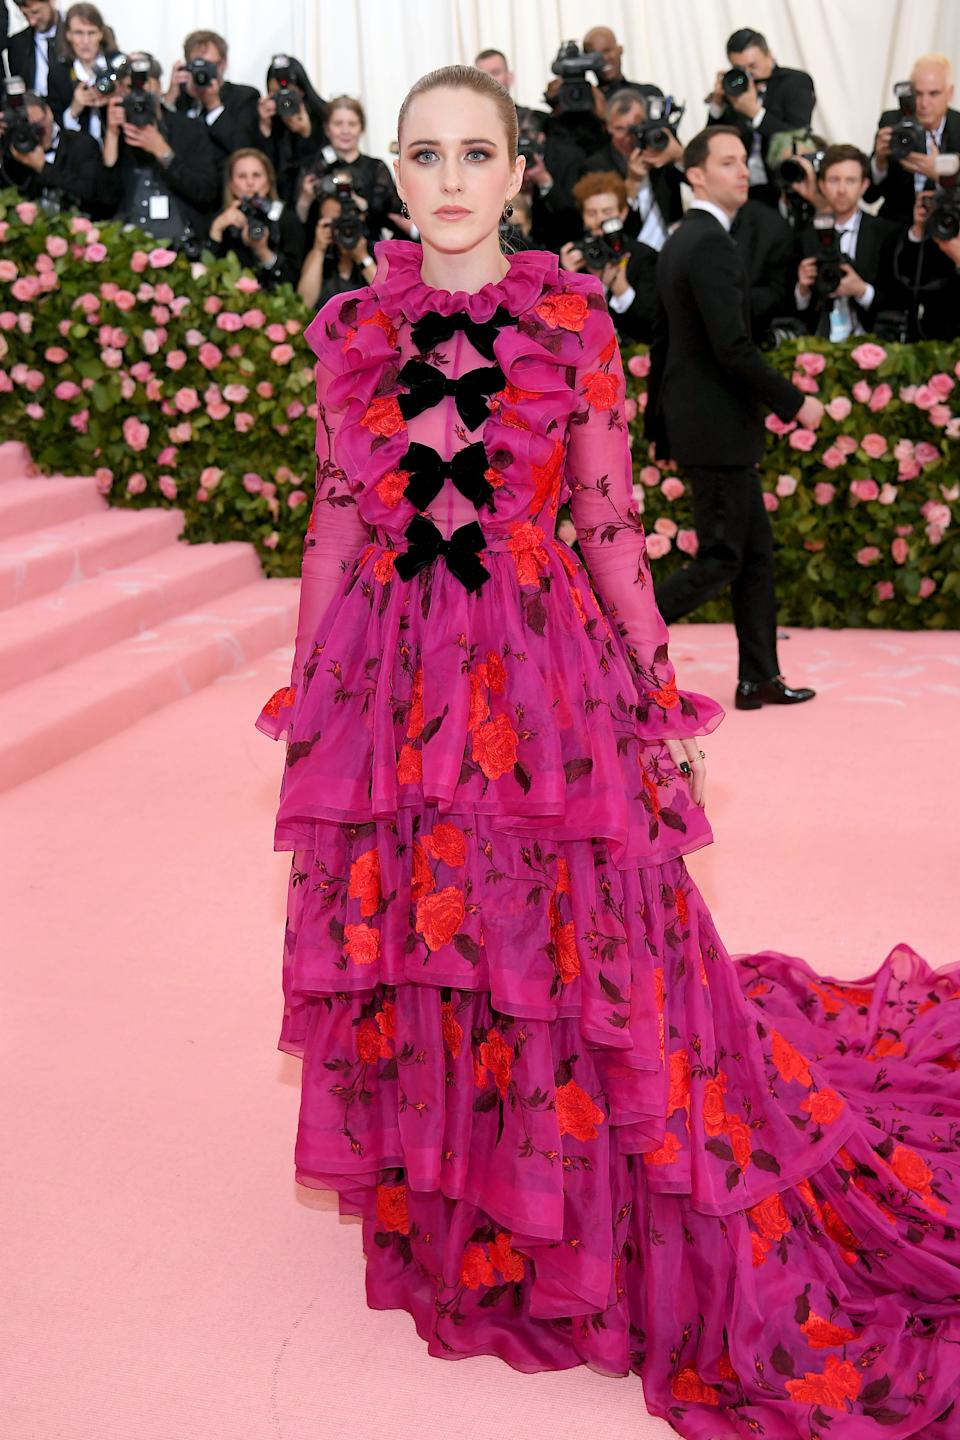 'The Marvelous Mrs. Maisel' actress turned heads in a look dominated by bows, roses and ruffles. Photo: Getty Images